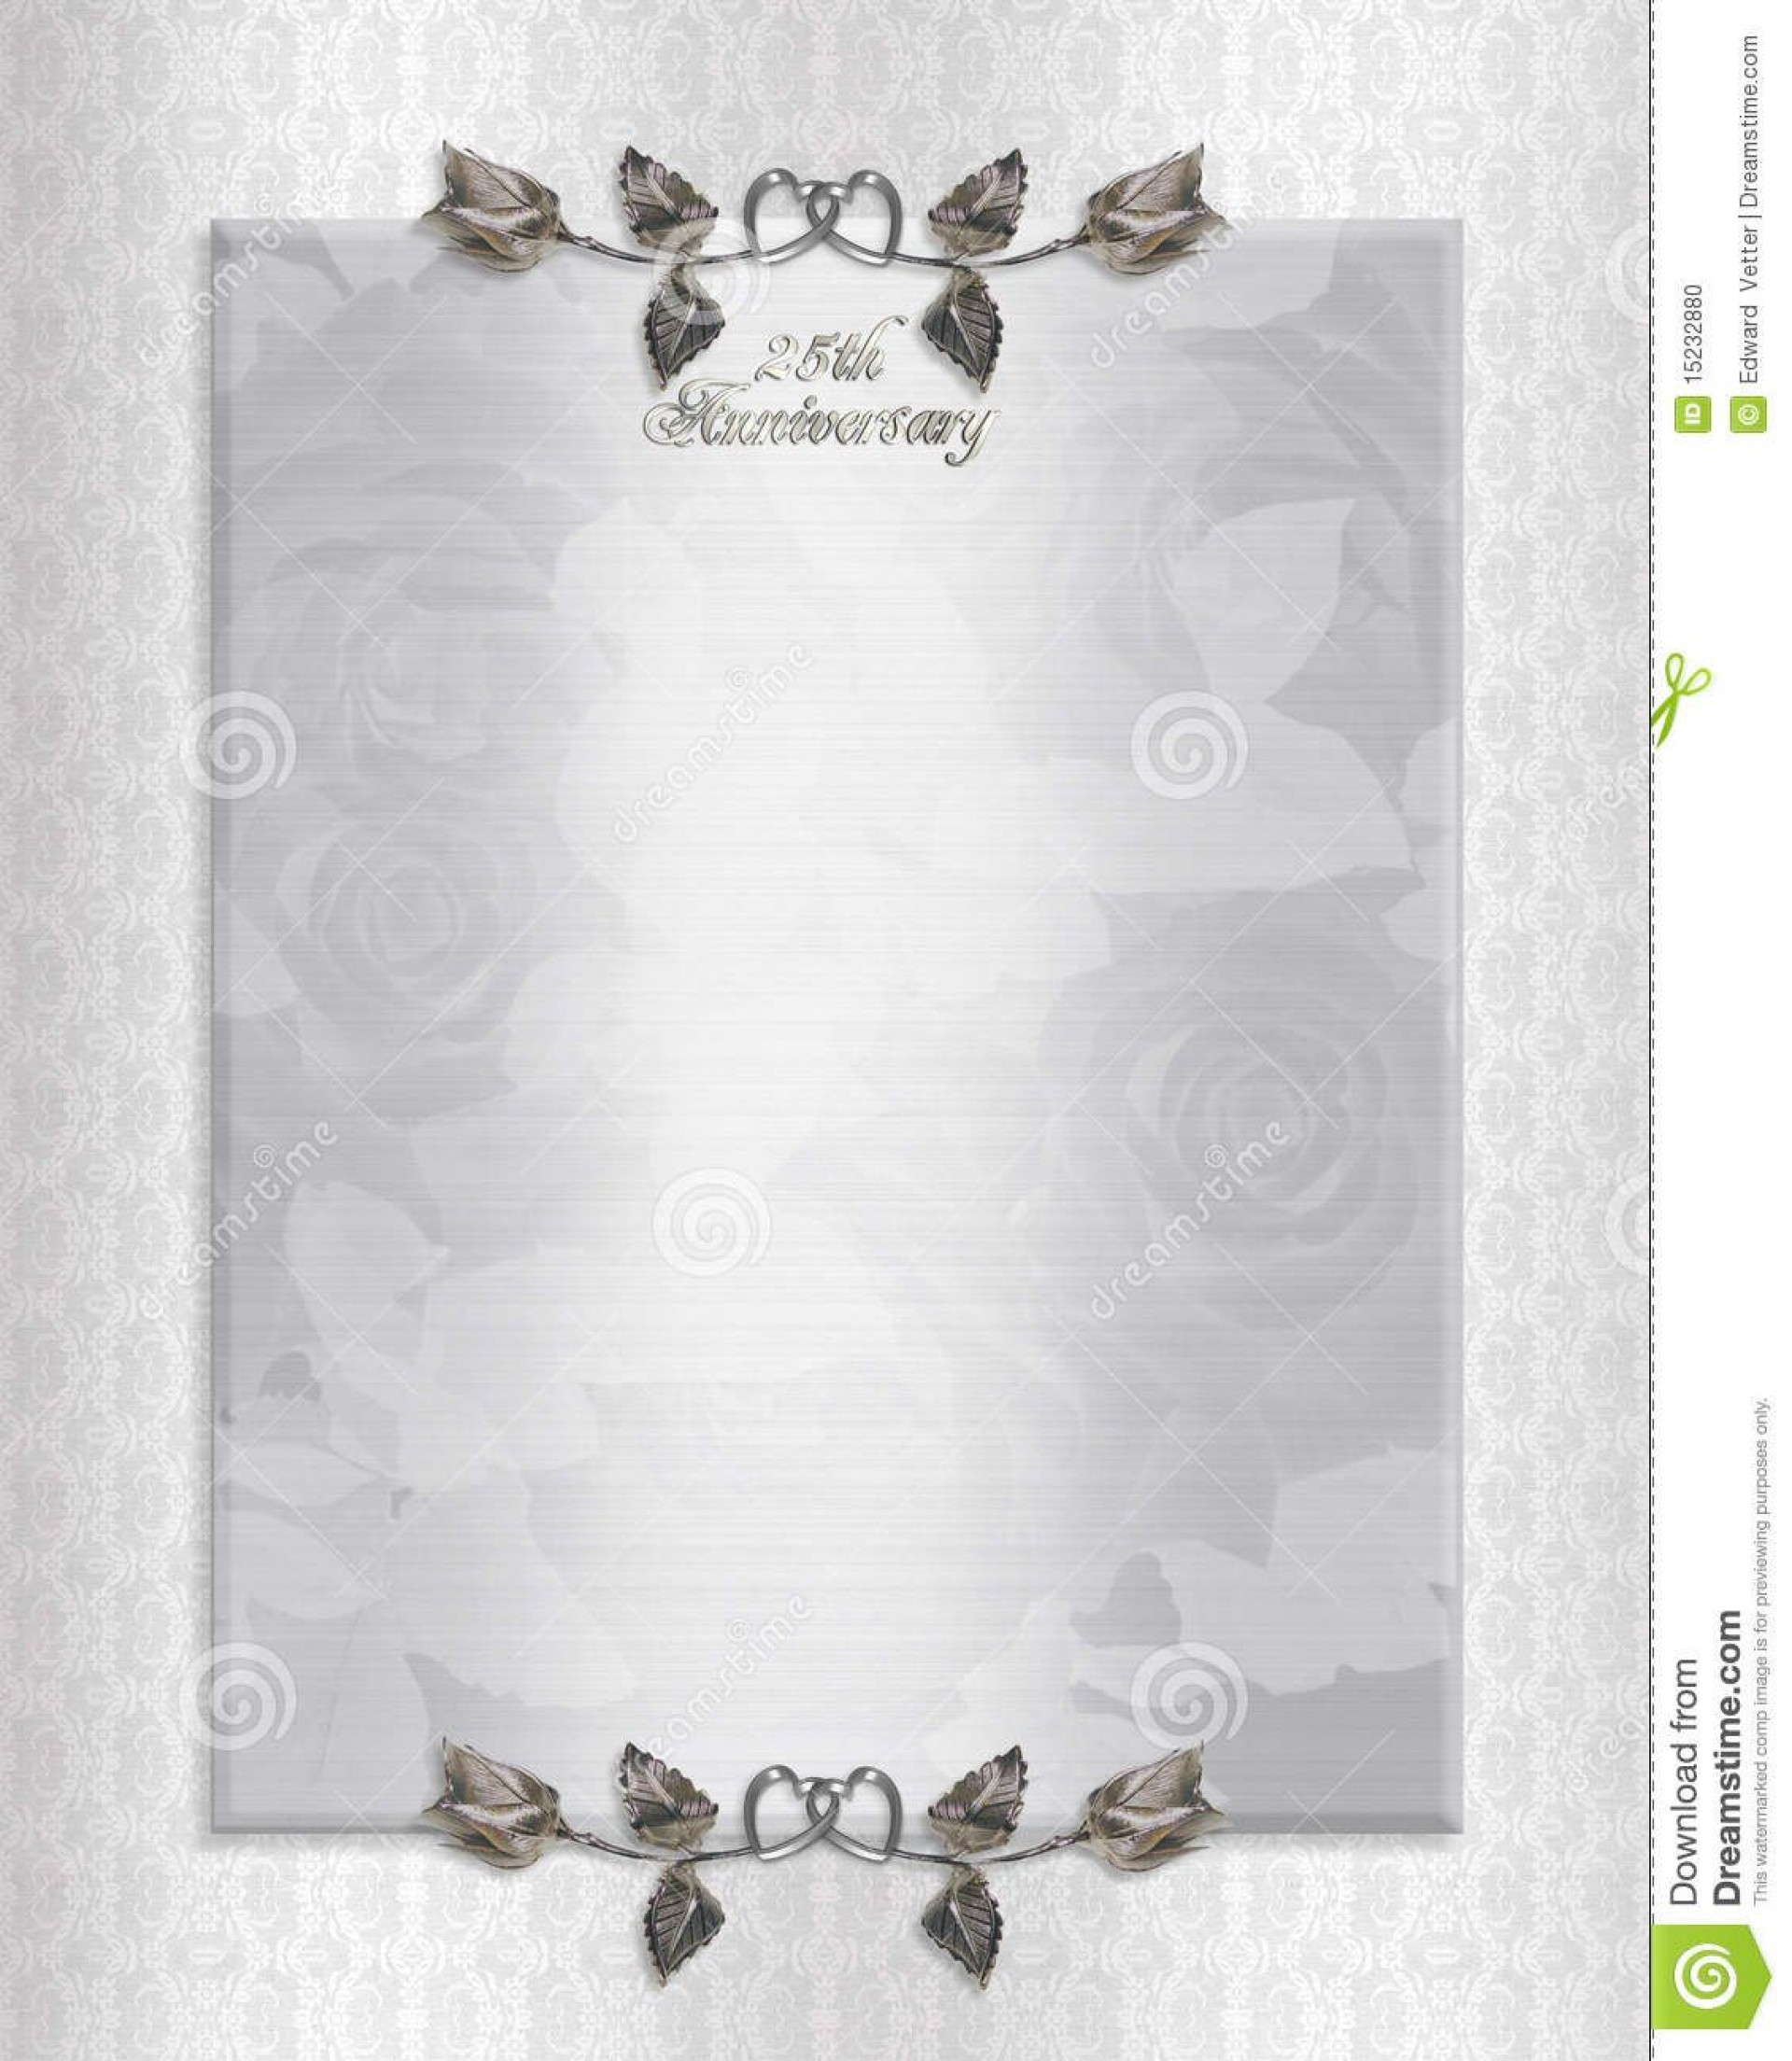 002 Unusual 50th Anniversary Invitation Template Free Highest Clarity  For Word Golden Wedding Download1920